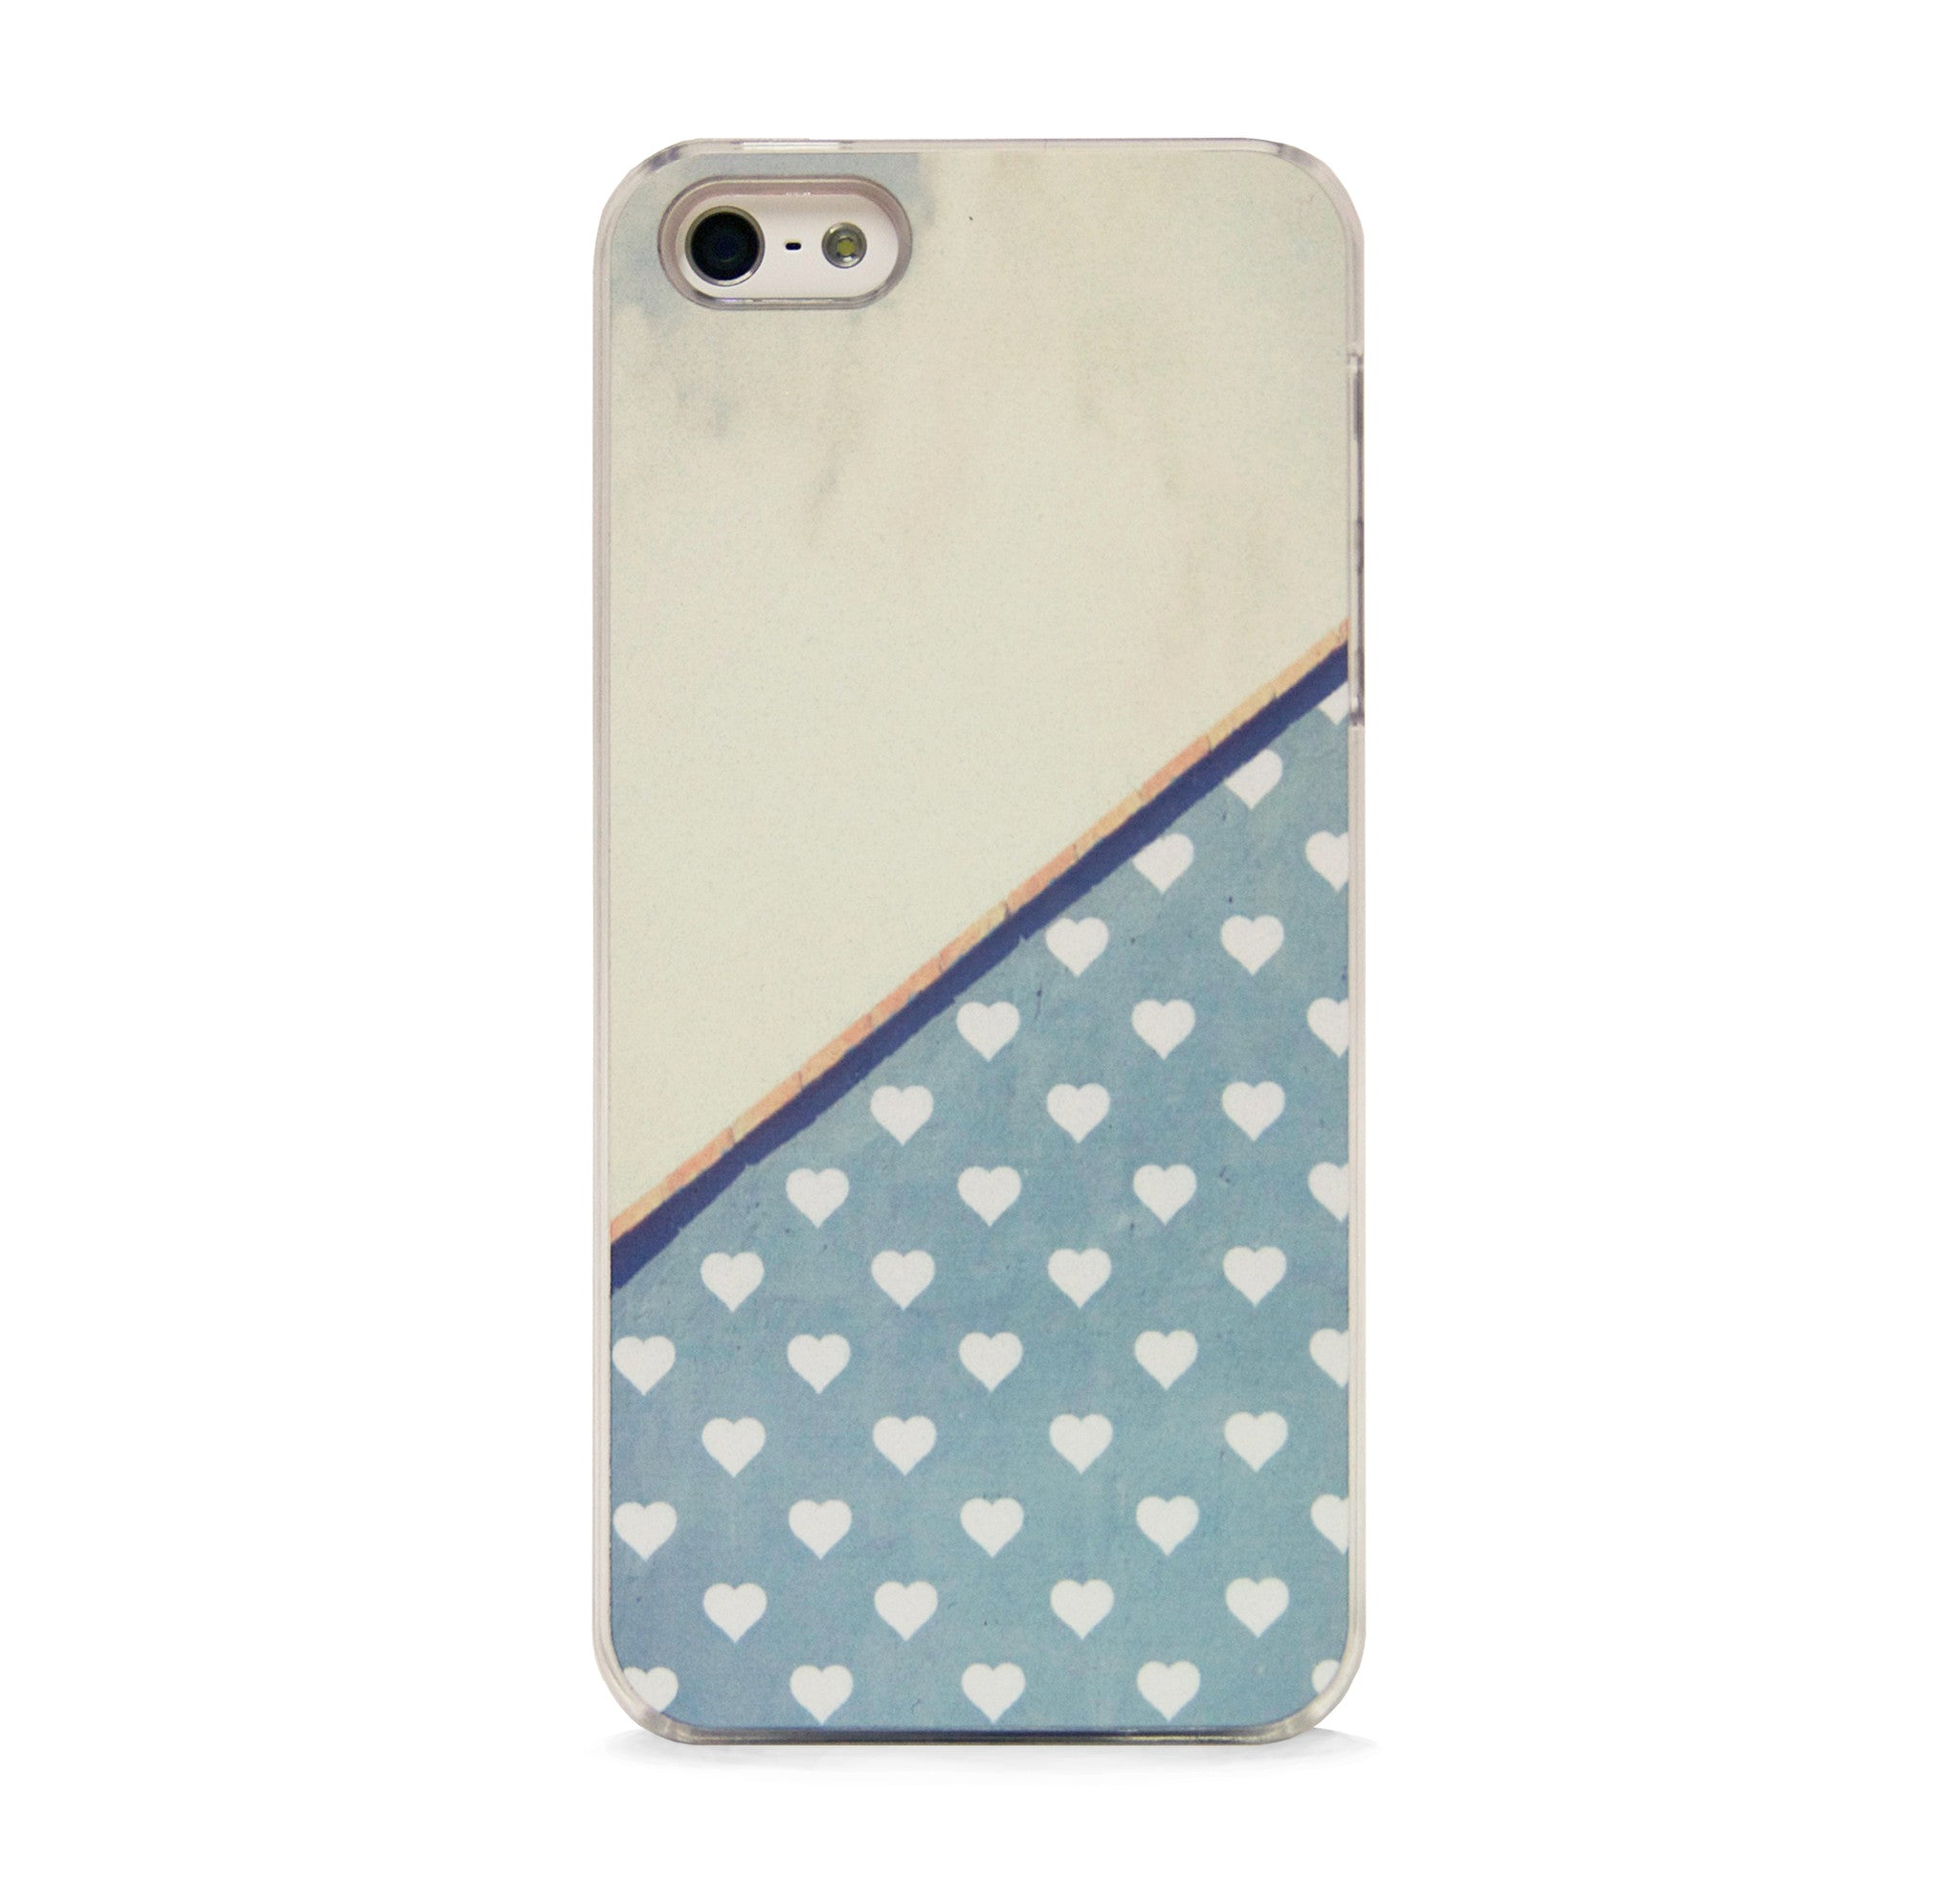 POLKA HEART GREY BLUE FOR IPHONE 5/5S